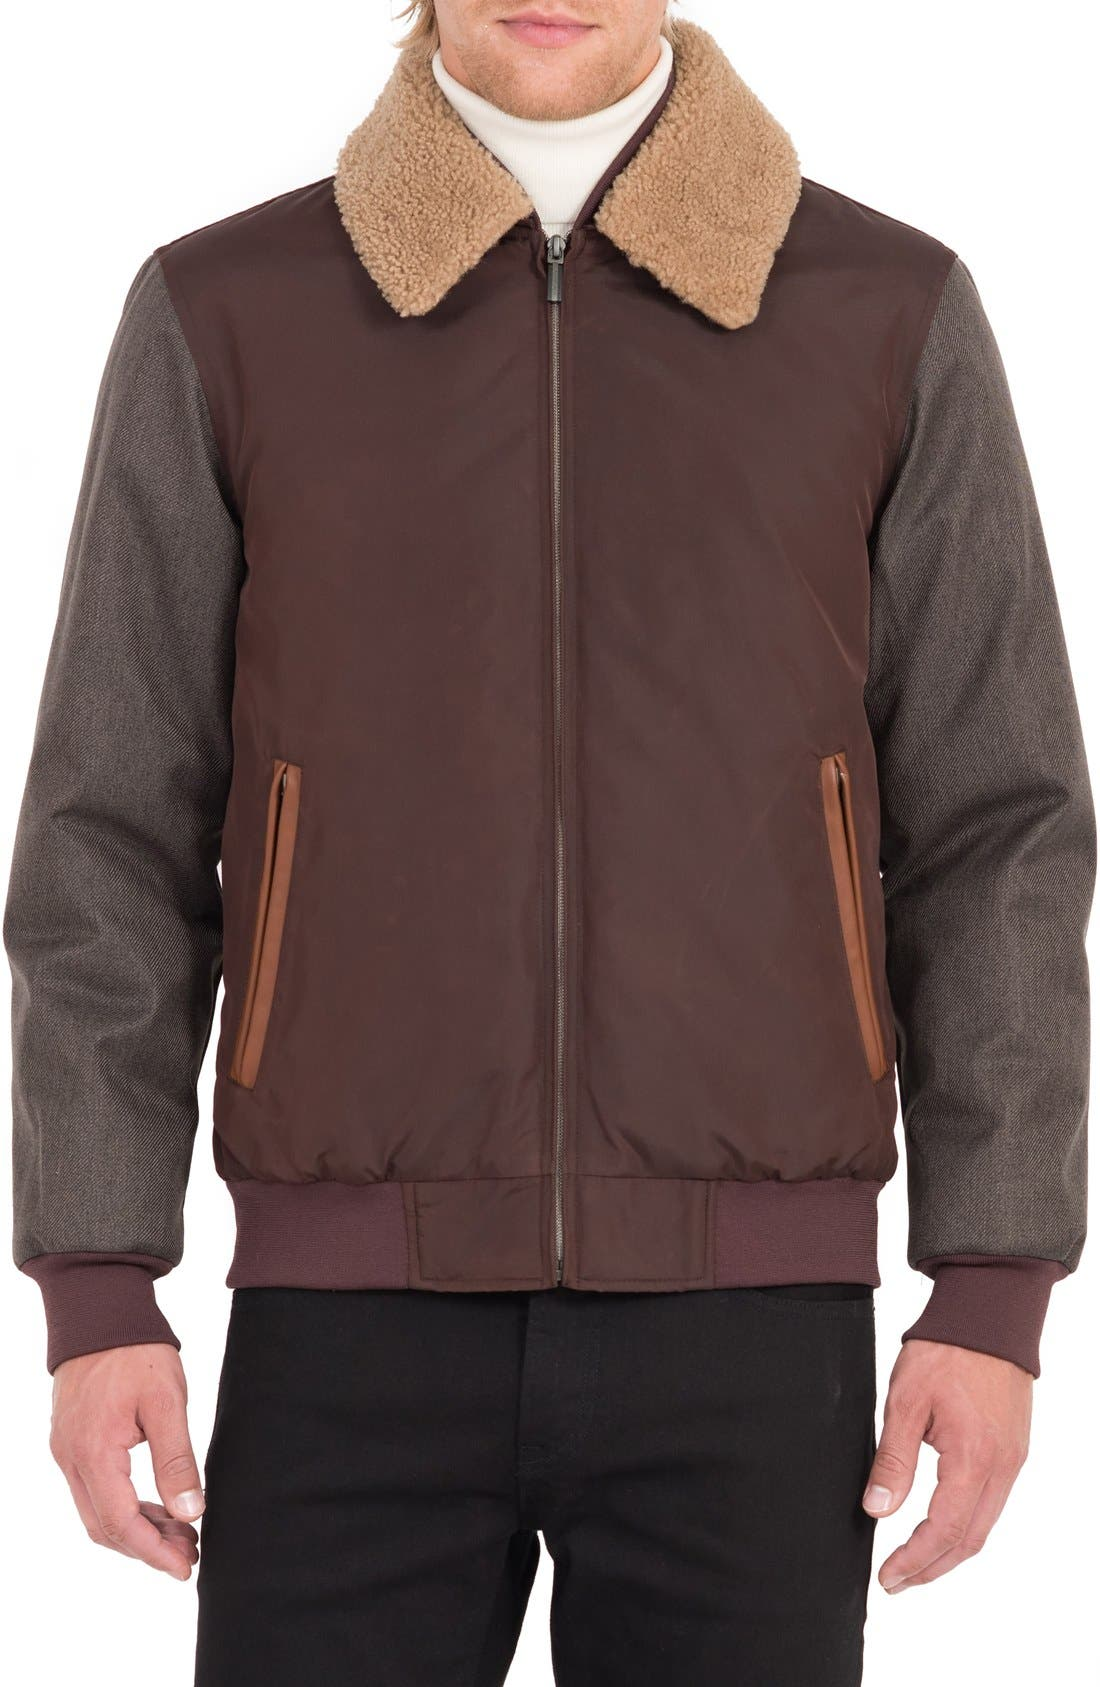 Waxed Nylon Jacket with Faux Shearling Collar,                         Main,                         color, 930